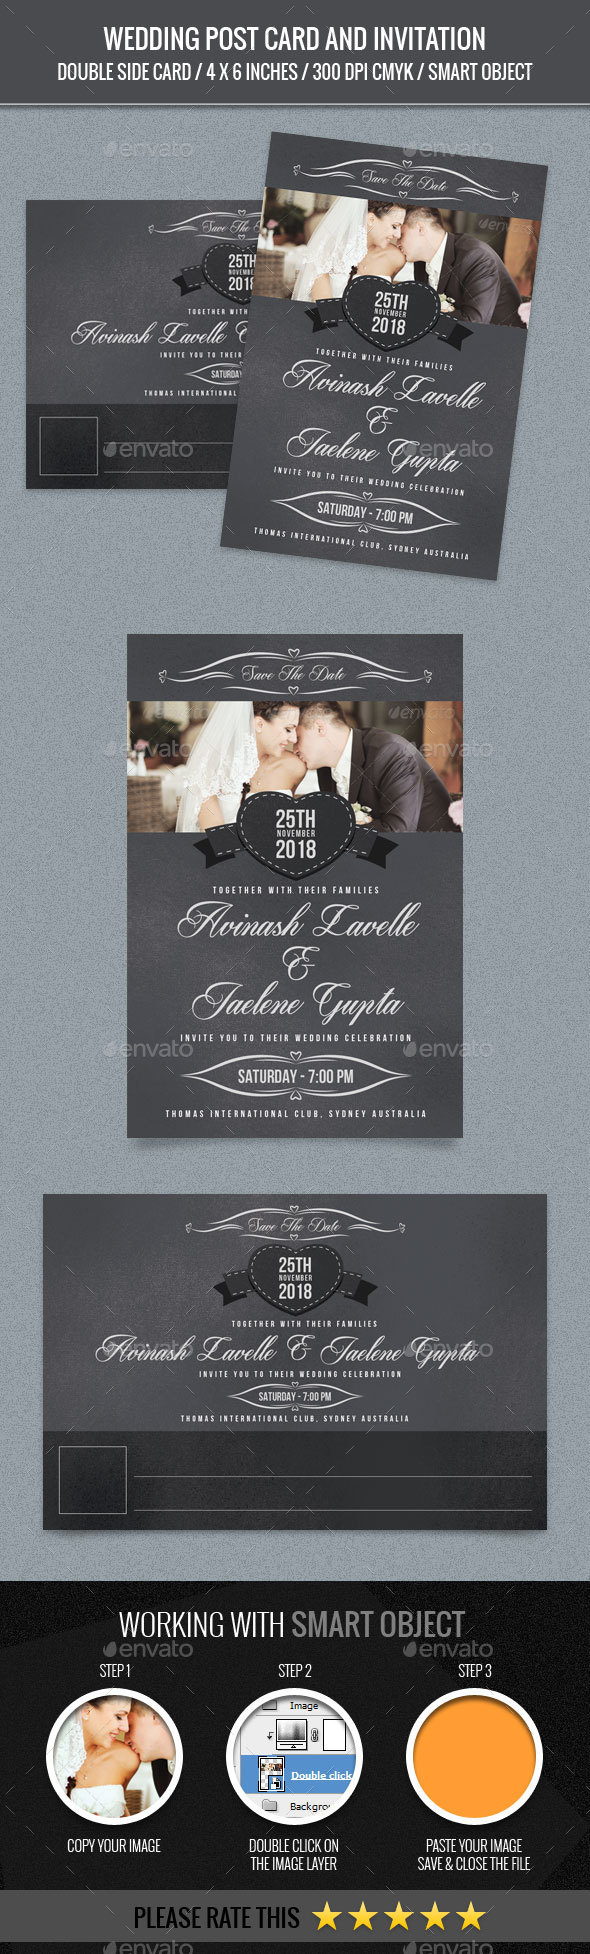 Wedding Post Card - Weddings Cards & Invites